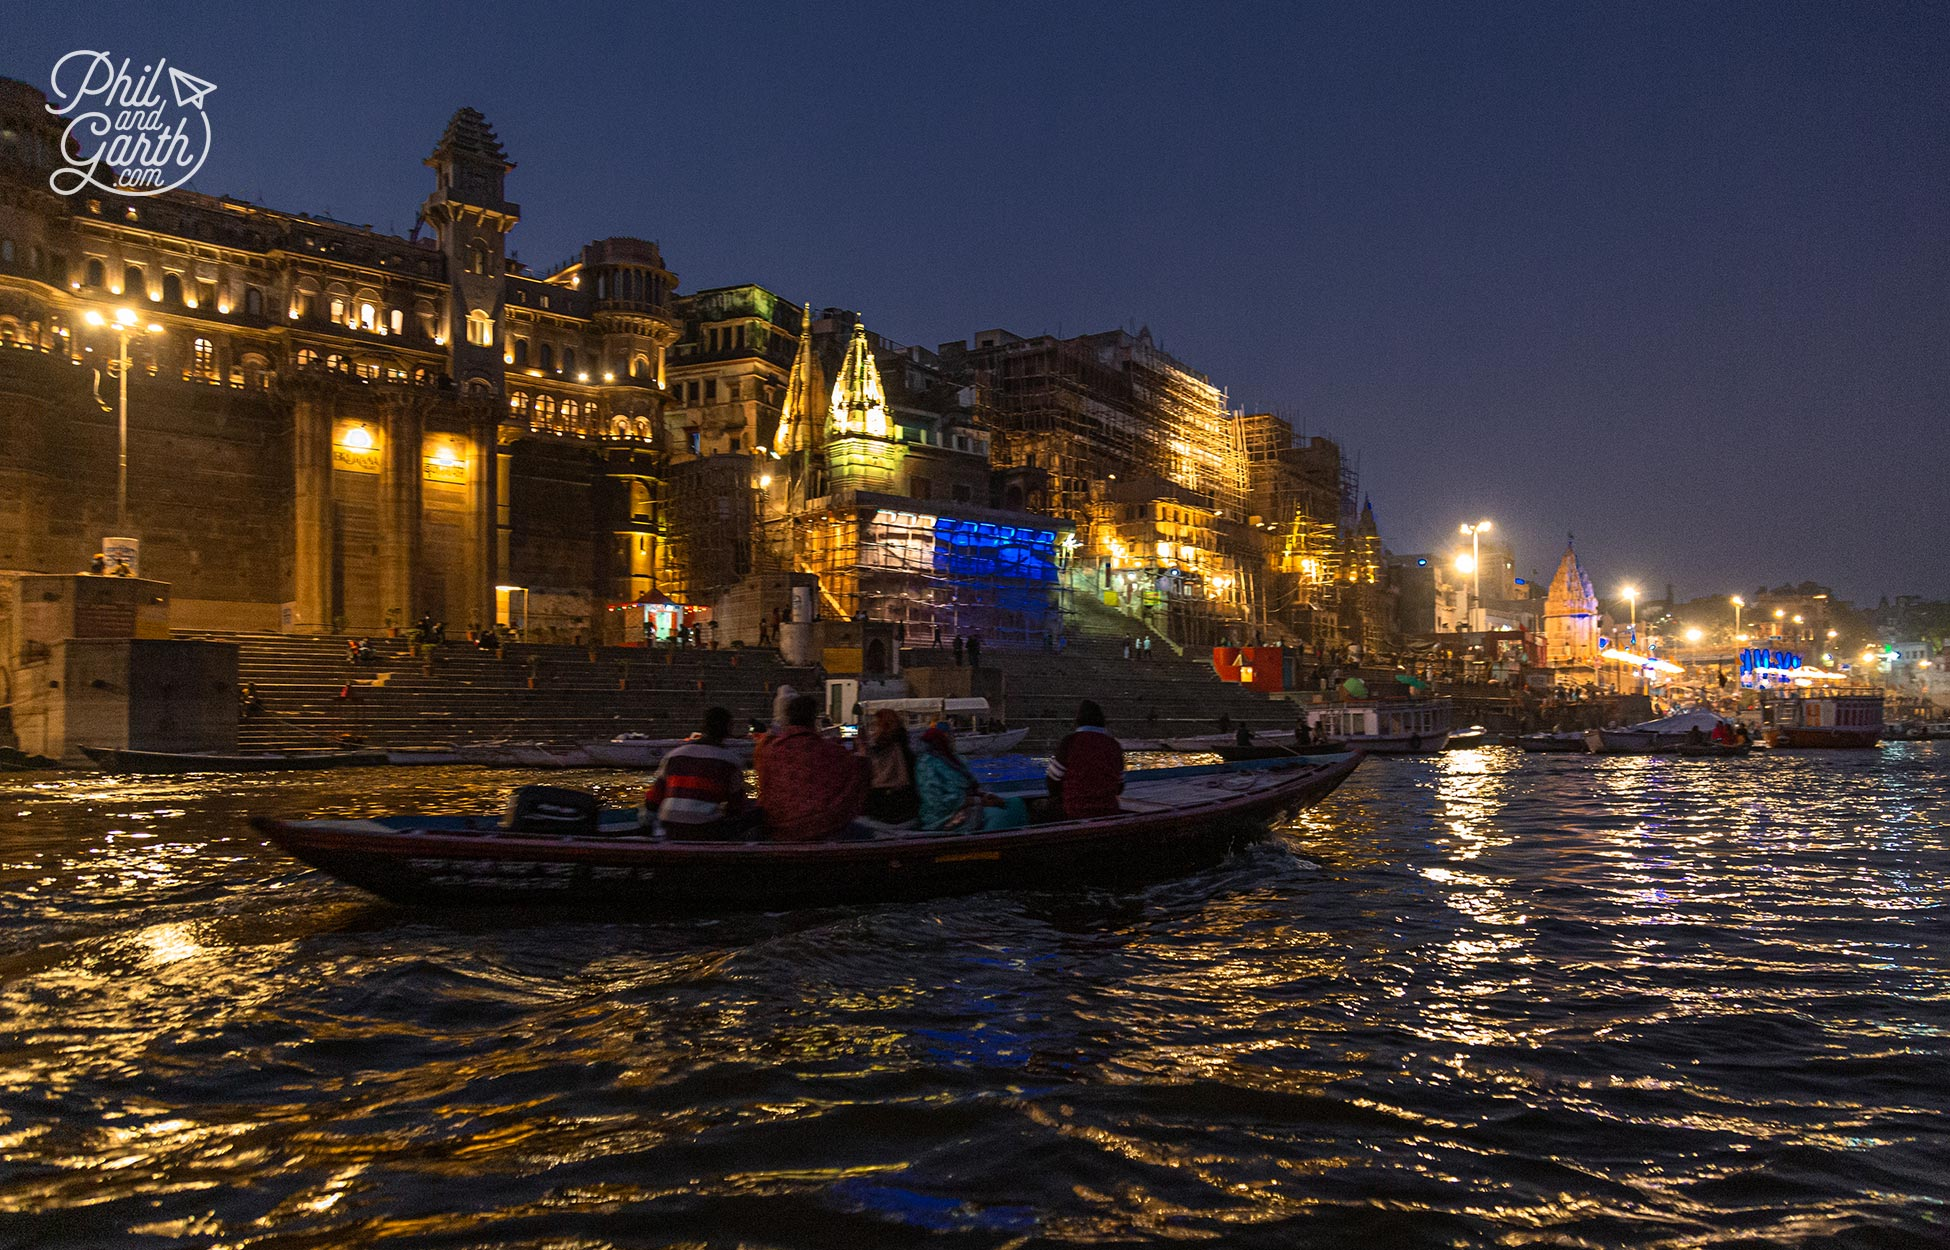 The journey back was fascinating as we listened to the sounds of the ghats like the sound from asitar